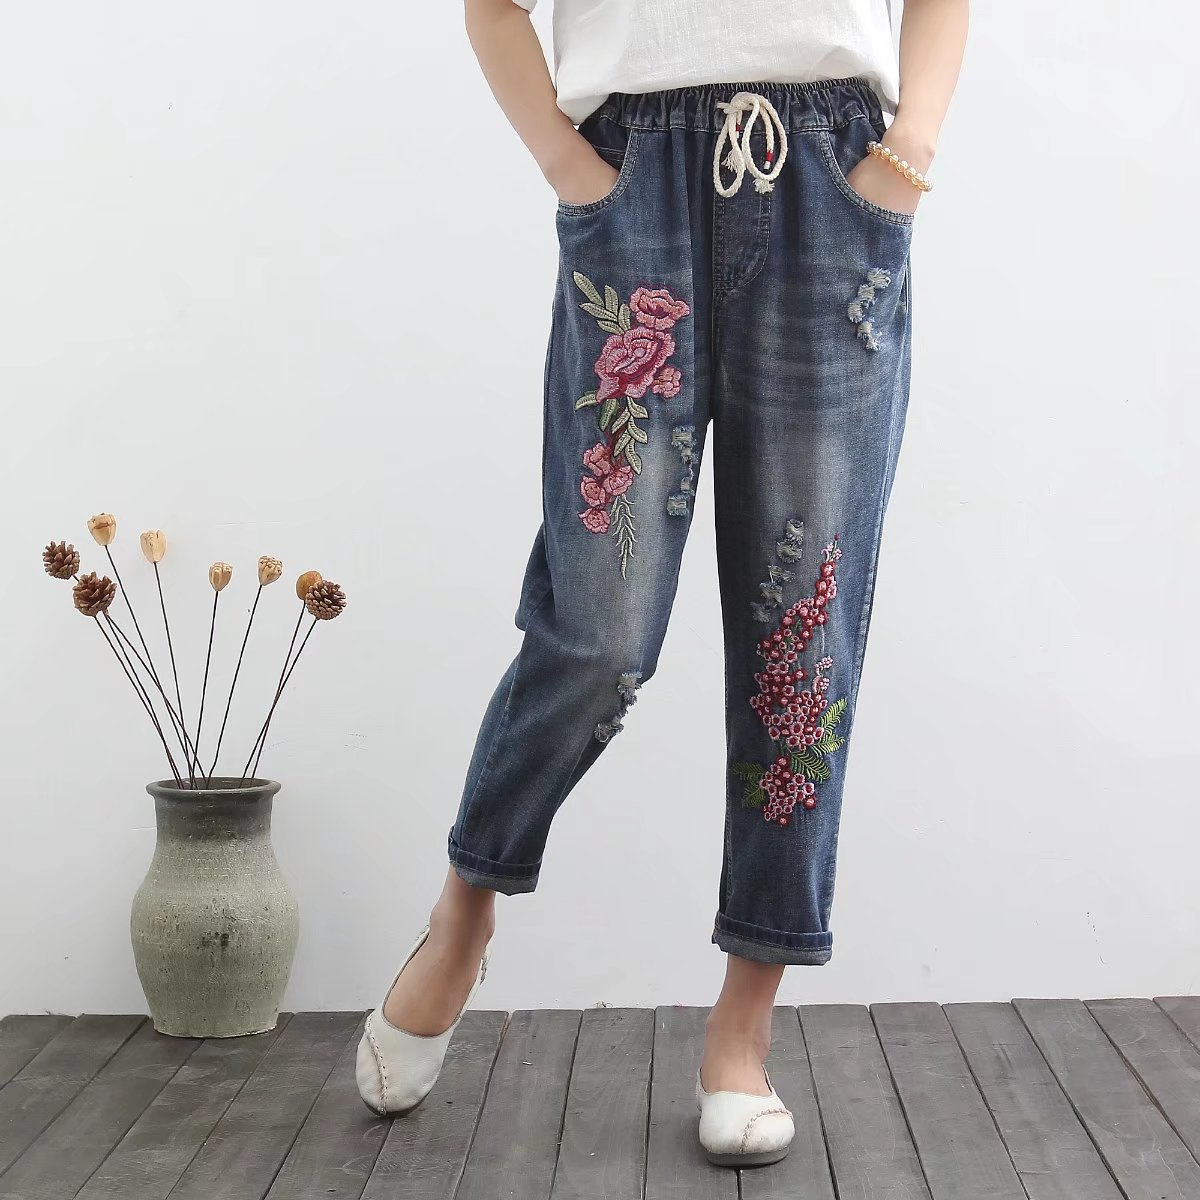 Industrial Embroidery Flowers Spring Casual With Holes Loose-Fit Slimming Capri Pants Jeans Women's Large Size Fashion S20345